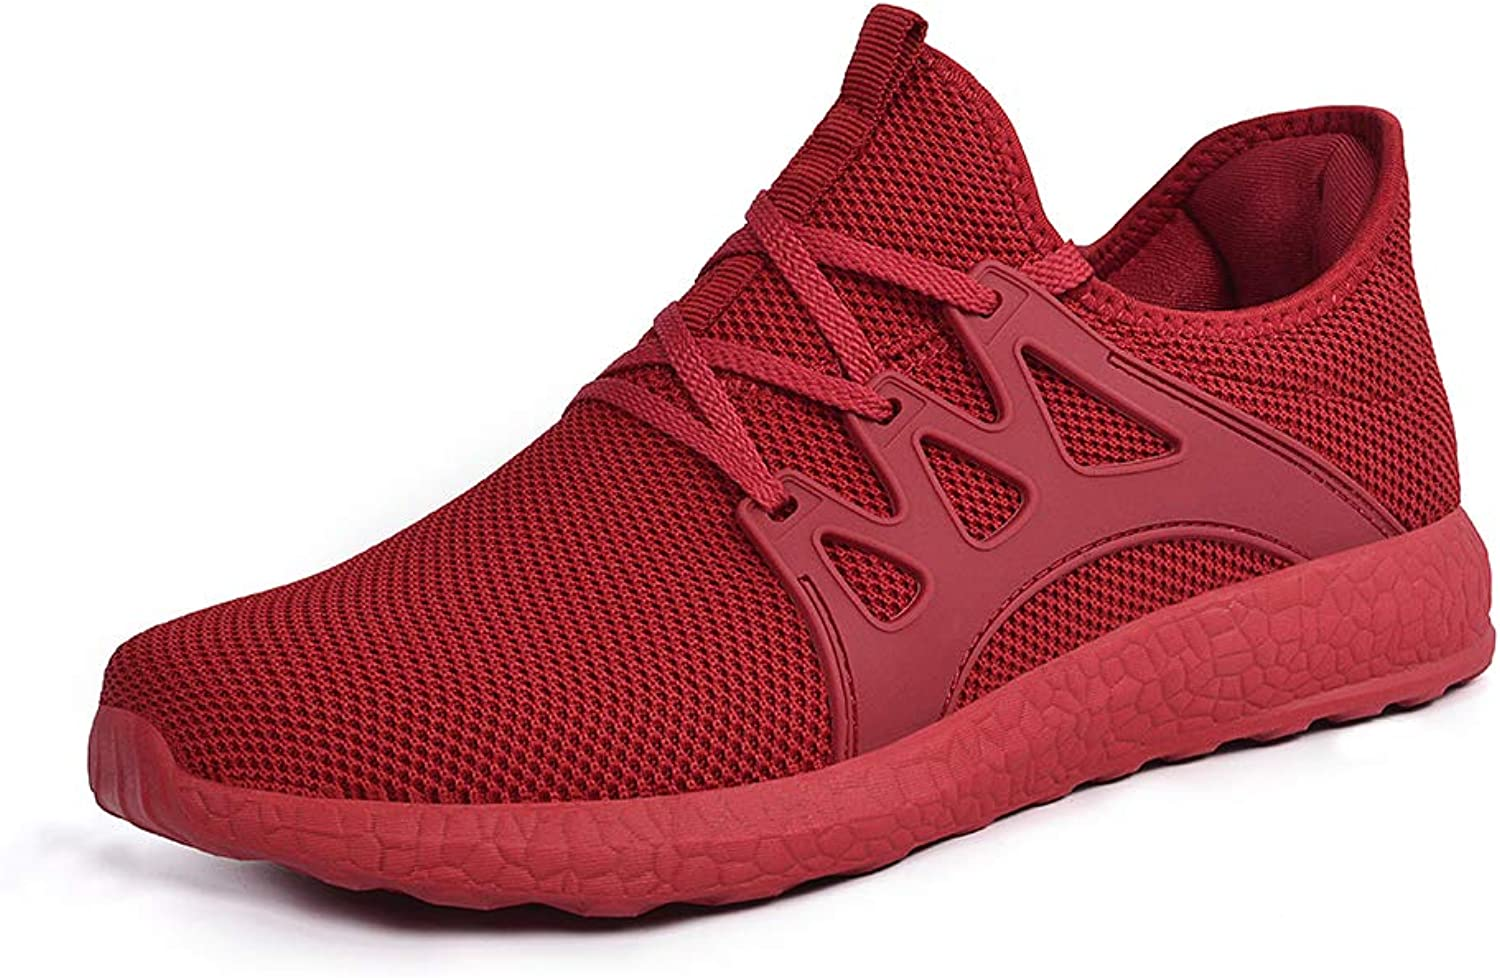 ZOCAVIA Womens Sneakers Slip On Lightweight Casual Nurse shoes Red 9.5